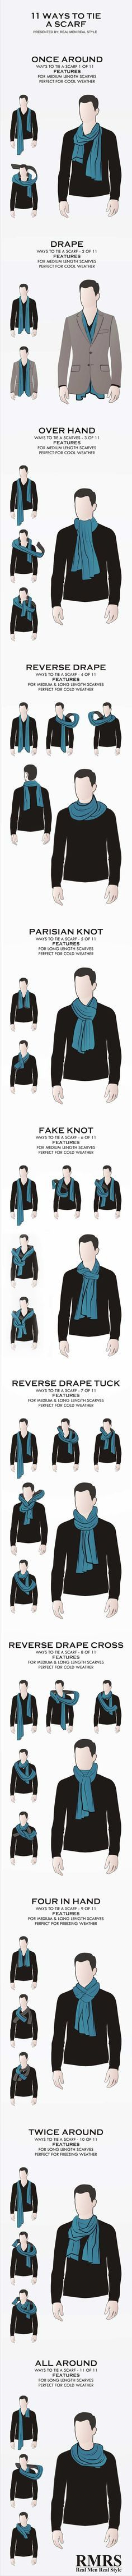 11 Ways To Tie A Men's Scarf Infographic